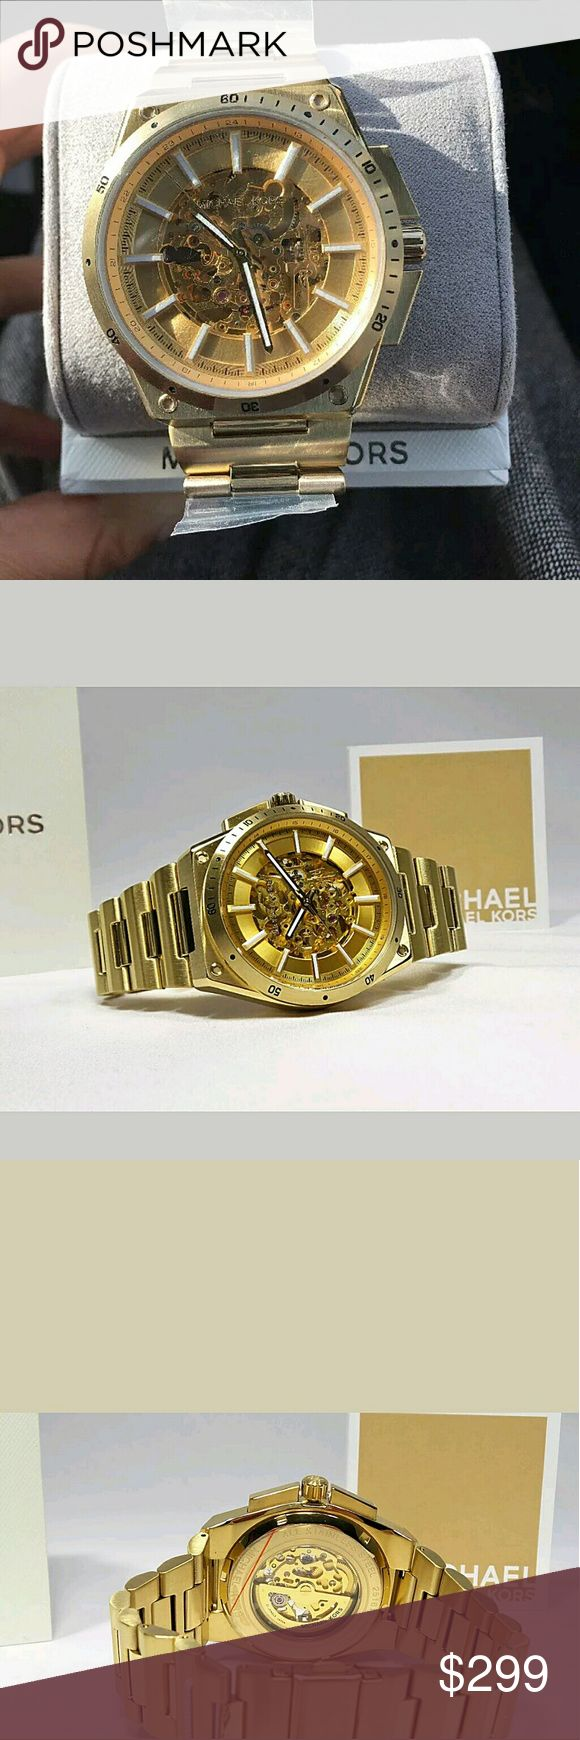 NWT Michael Kors Men's Automatic Skeleton Watch NWT Michael Kors Men's  Gold m-Tone Automatic Skeleton Watch.   FIRM PRICE FIRM PRICE FIRM PRICE  $299.00 . AUTHENTIC WATCH  . AUTHENTIC BOX  . AUTHENTIC MANUAL   SHIPPING  PLEASE ALLOW FEW BUSINESS DAYS FOR ME TO SHIPPED IT OFF.I HAVE TO GET IT FROM MY STORE.   THANK YOU FOR YOUR UNDERSTANDING. Michael Kors  Accessories Watches